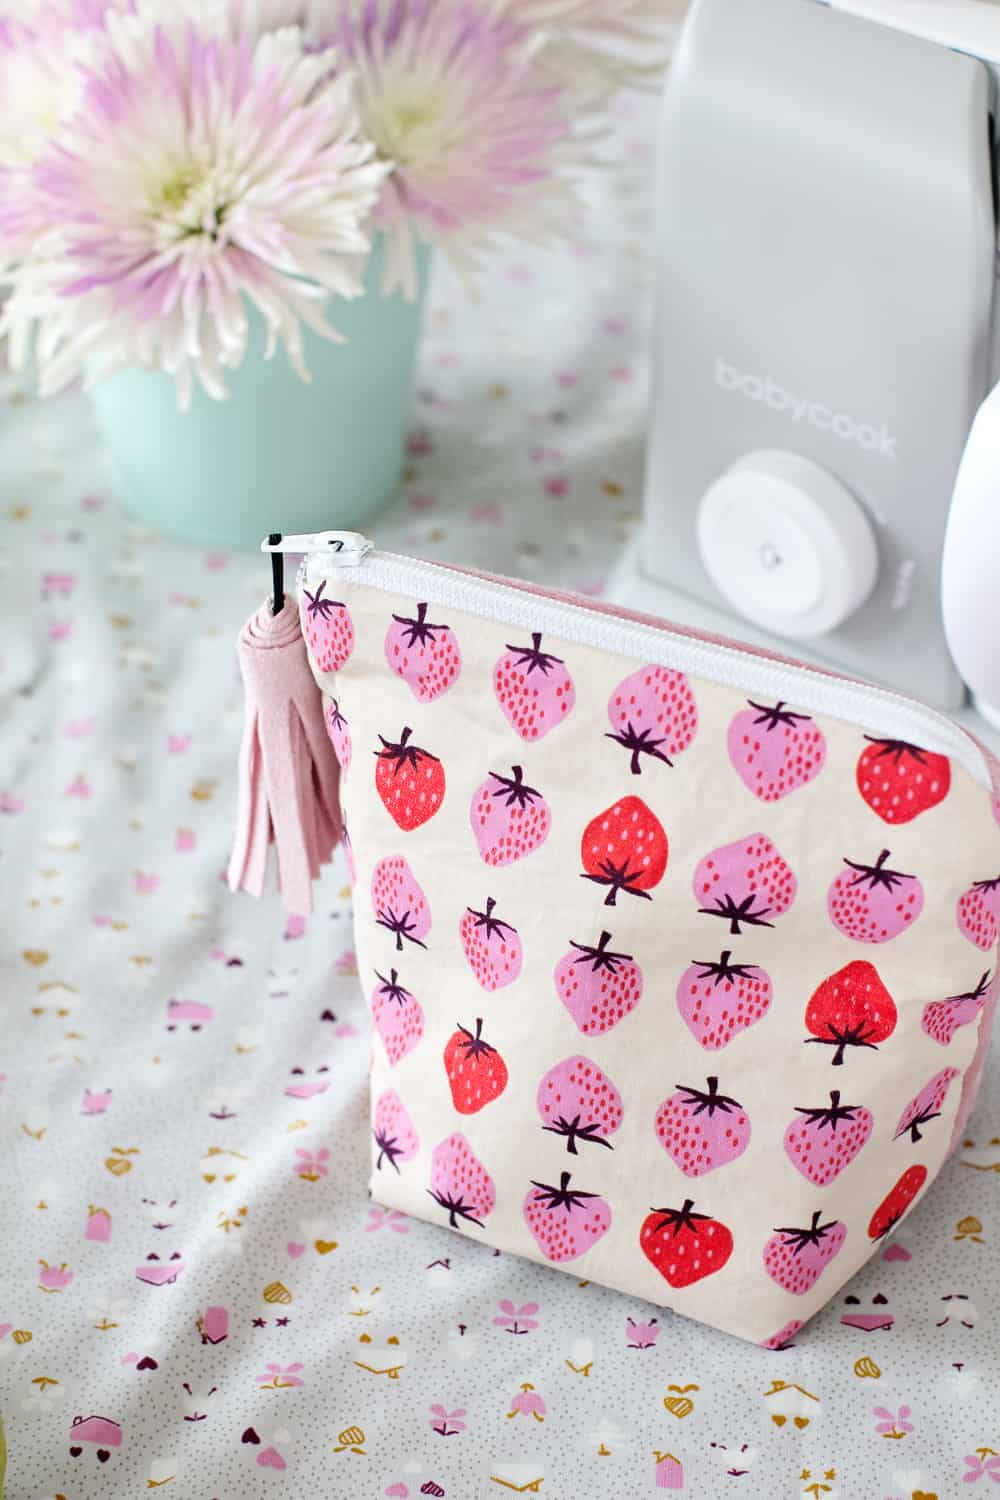 Beaba Babycook Review + Baby Food Recipes | diy lunch box pattern | diy lunchbox | how to sew a lunchbox | lunch bag pattern | lunch bag tutorial || See Kate Sew #lunchbag #diysewing #sewingtutorial